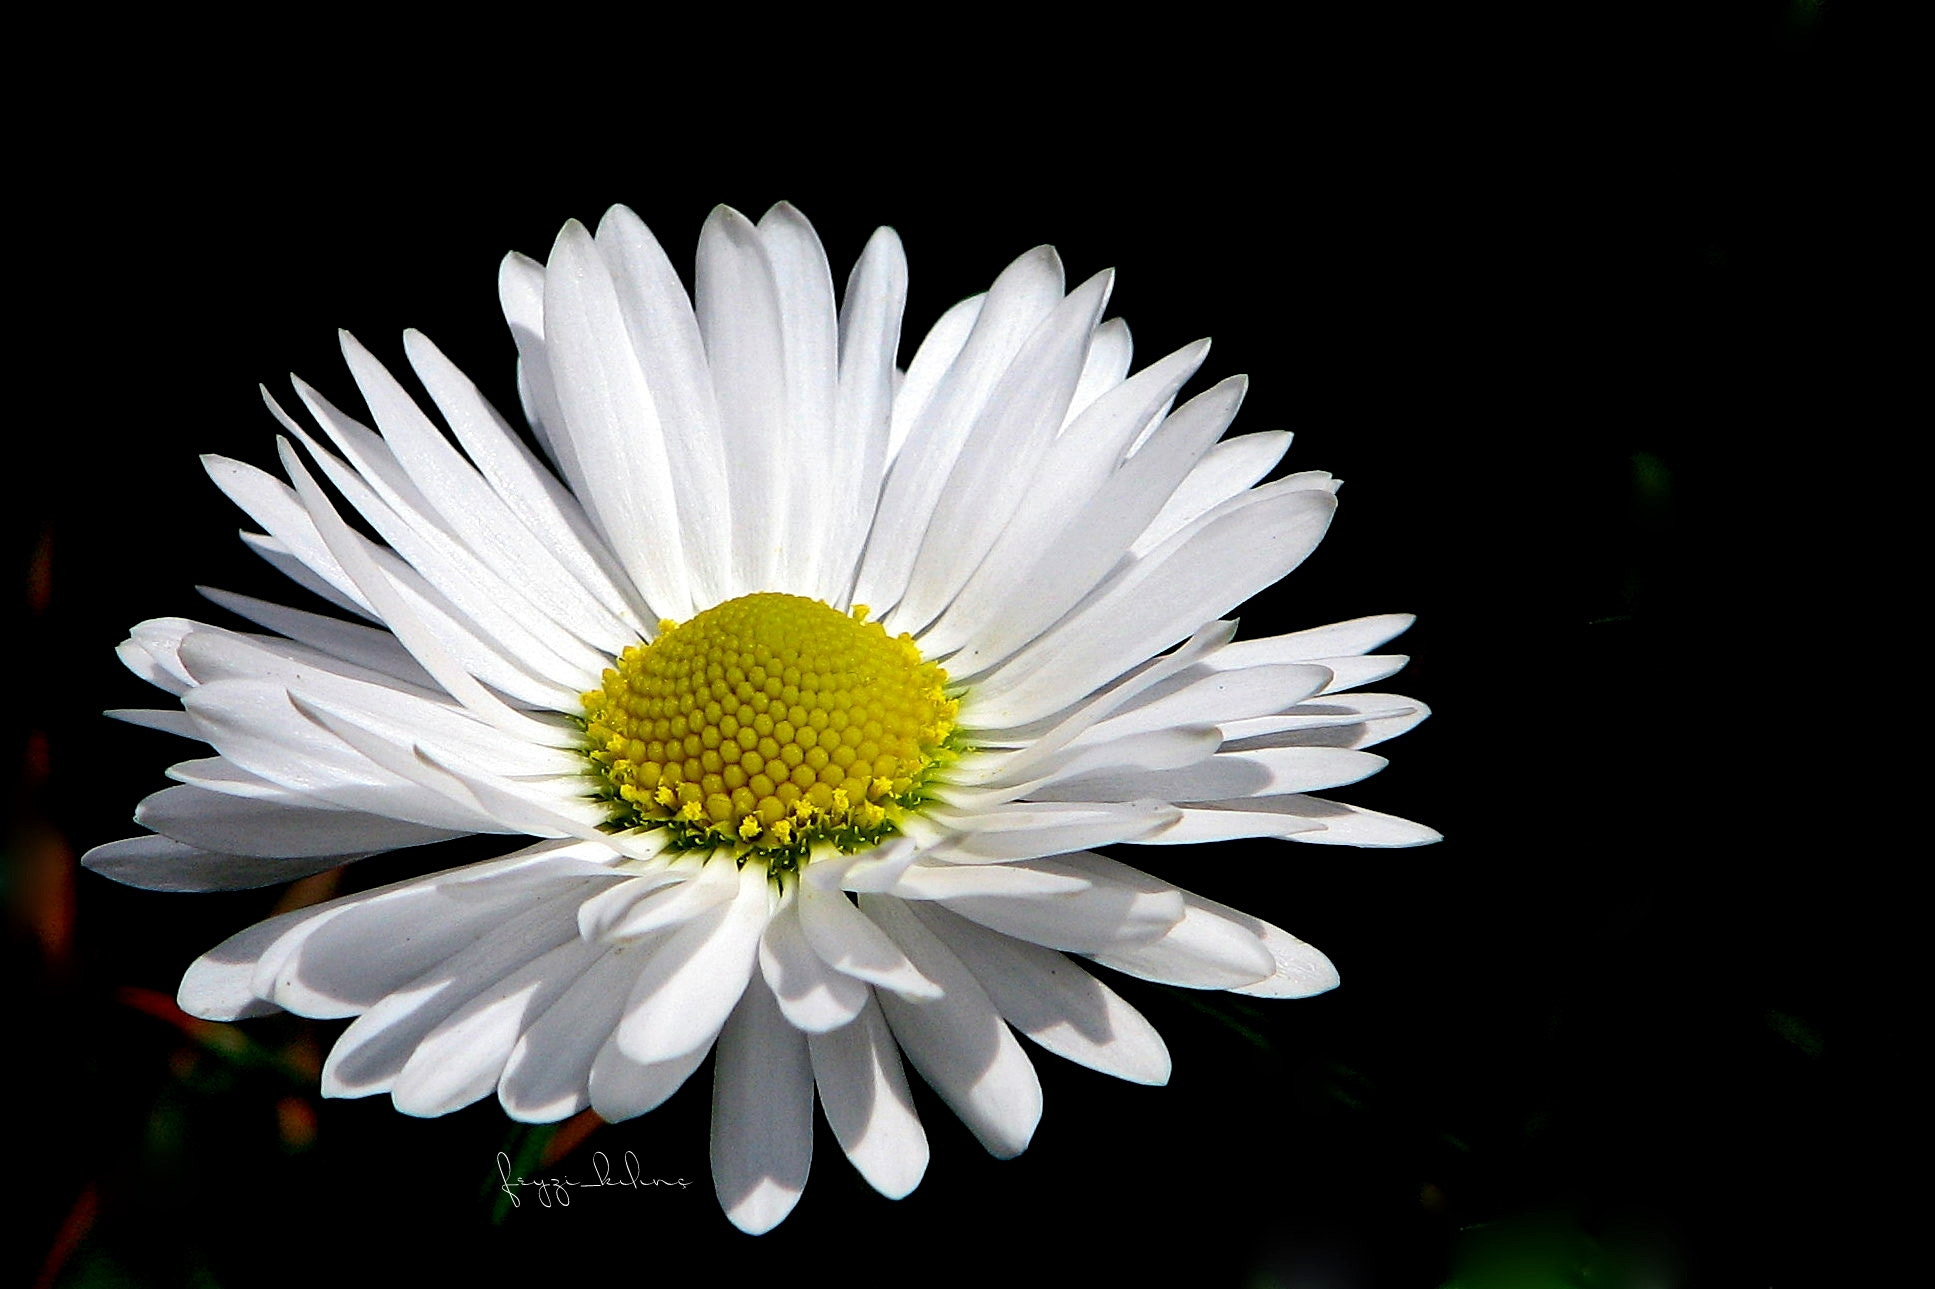 Photograph Daisy by feyzi klnc on 500px